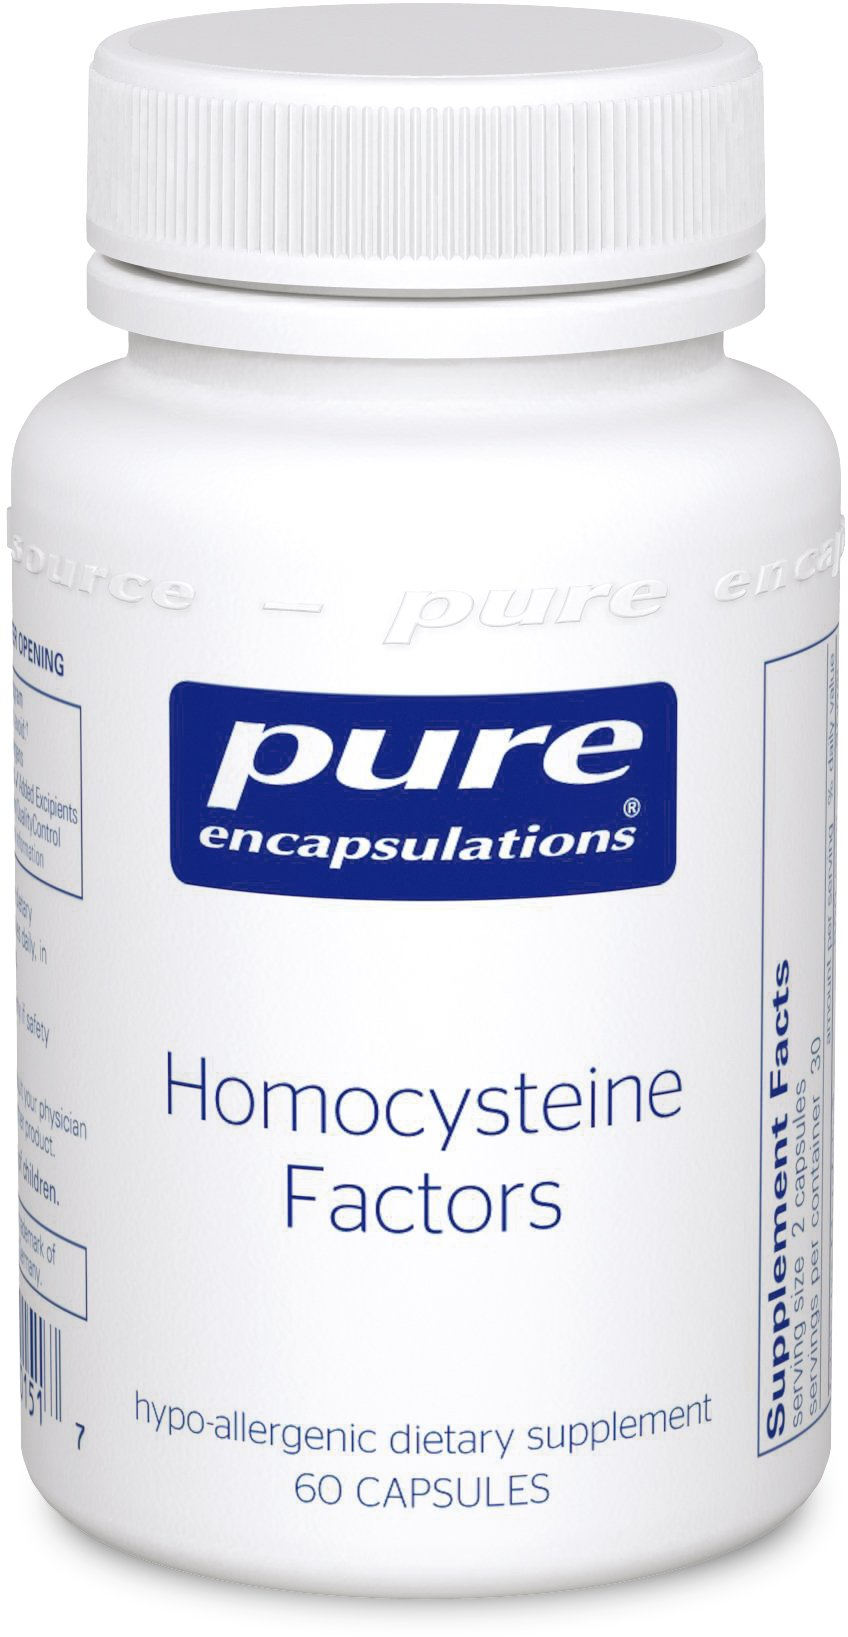 Pure Encapsulations - Homocysteine Factors - Hypoallergenic Supplement Helps Maintain Normal Homocysteine Levels and Cardiovascular Health* - 60 Capsules